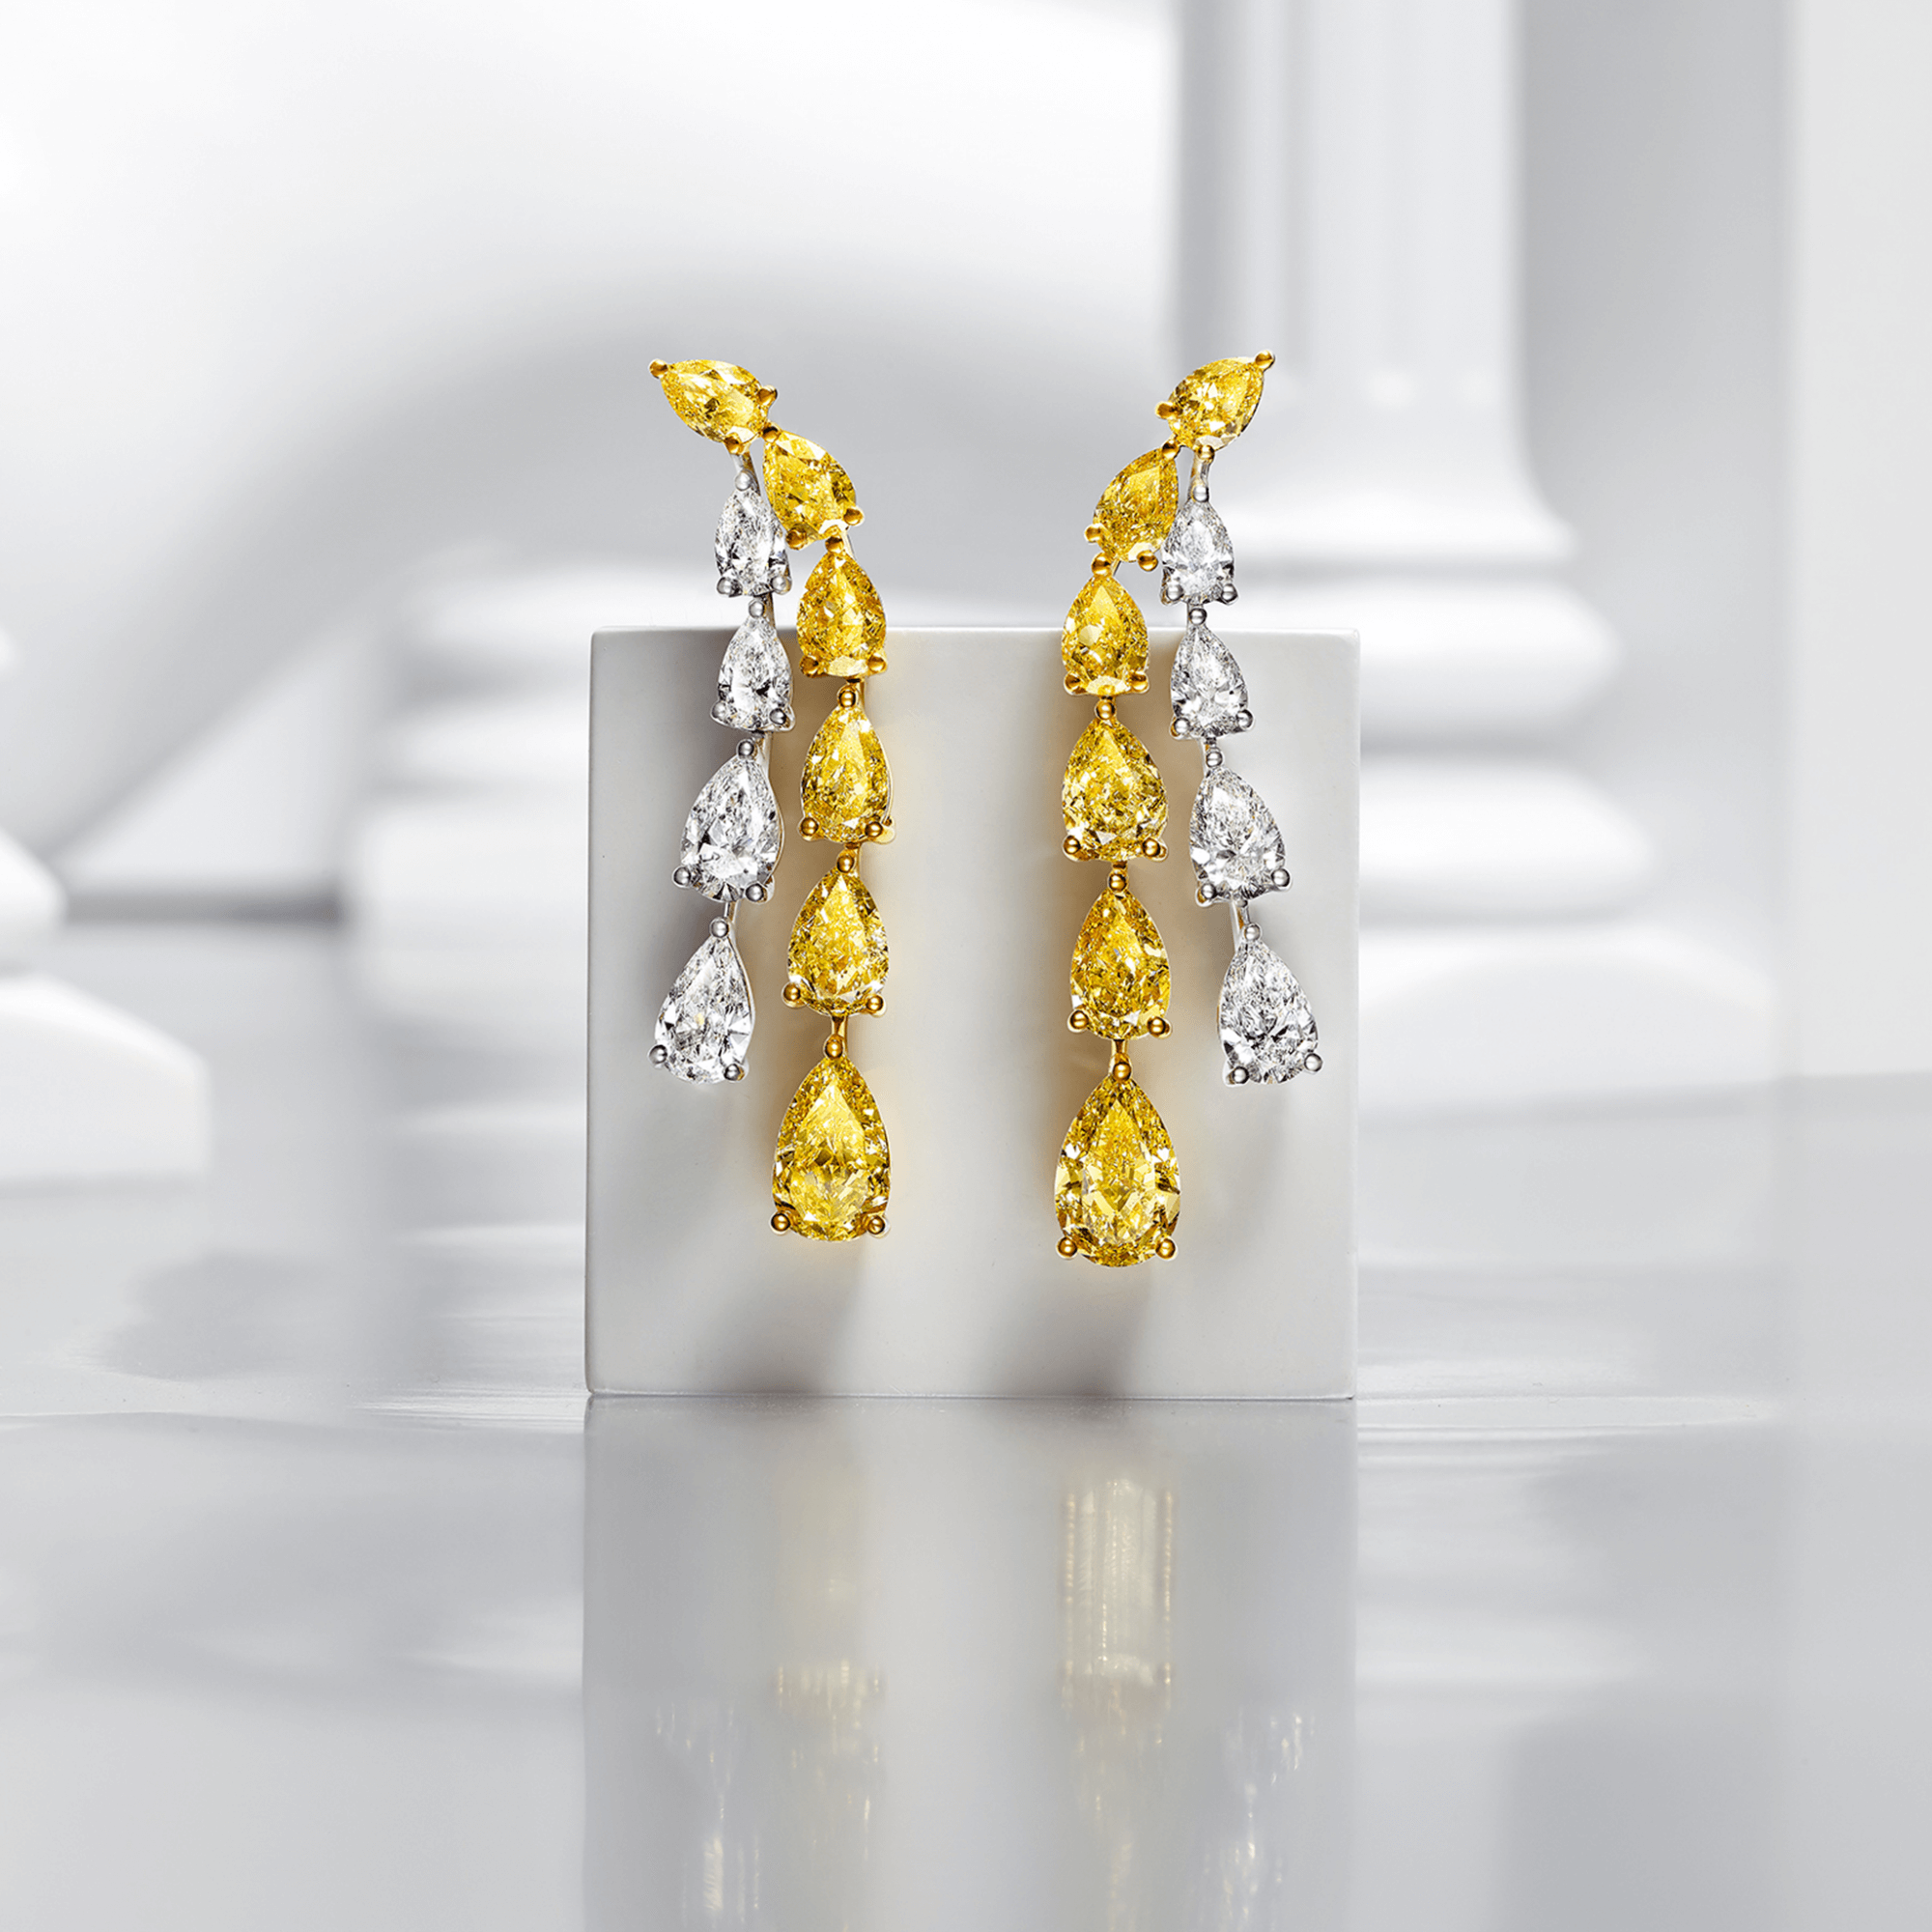 Graff Yellow And White Pear Shaped Diamond High Jewellery Earrings inside a Gallery